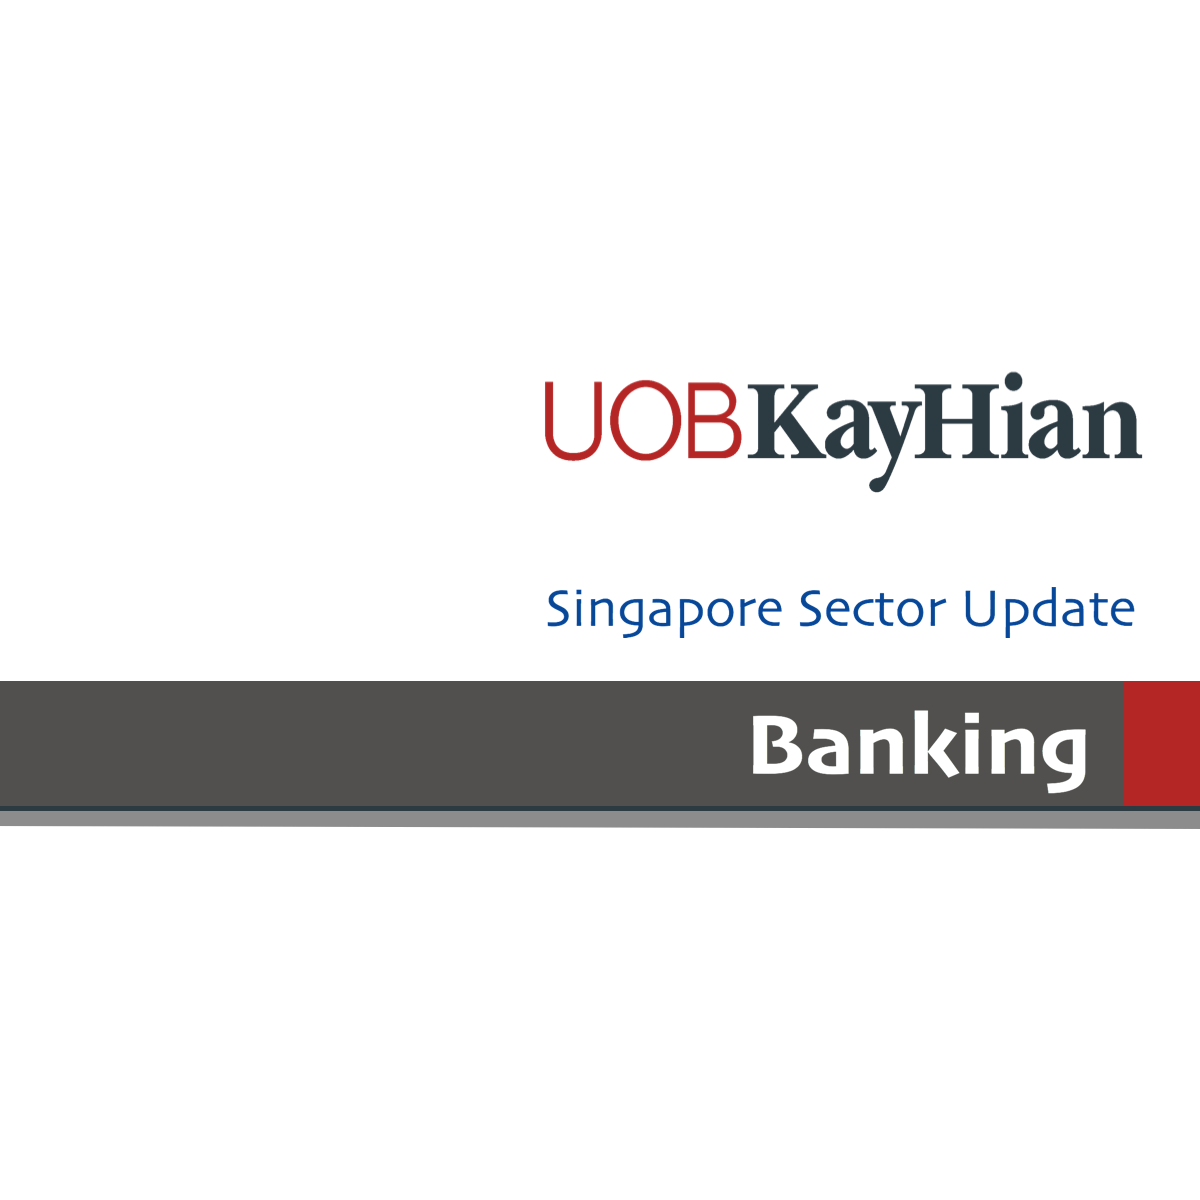 Singapore Banks - UOB Kay Hian 2017-03-23: Long/Short Ideas: BUY OCBC, SELL DBS